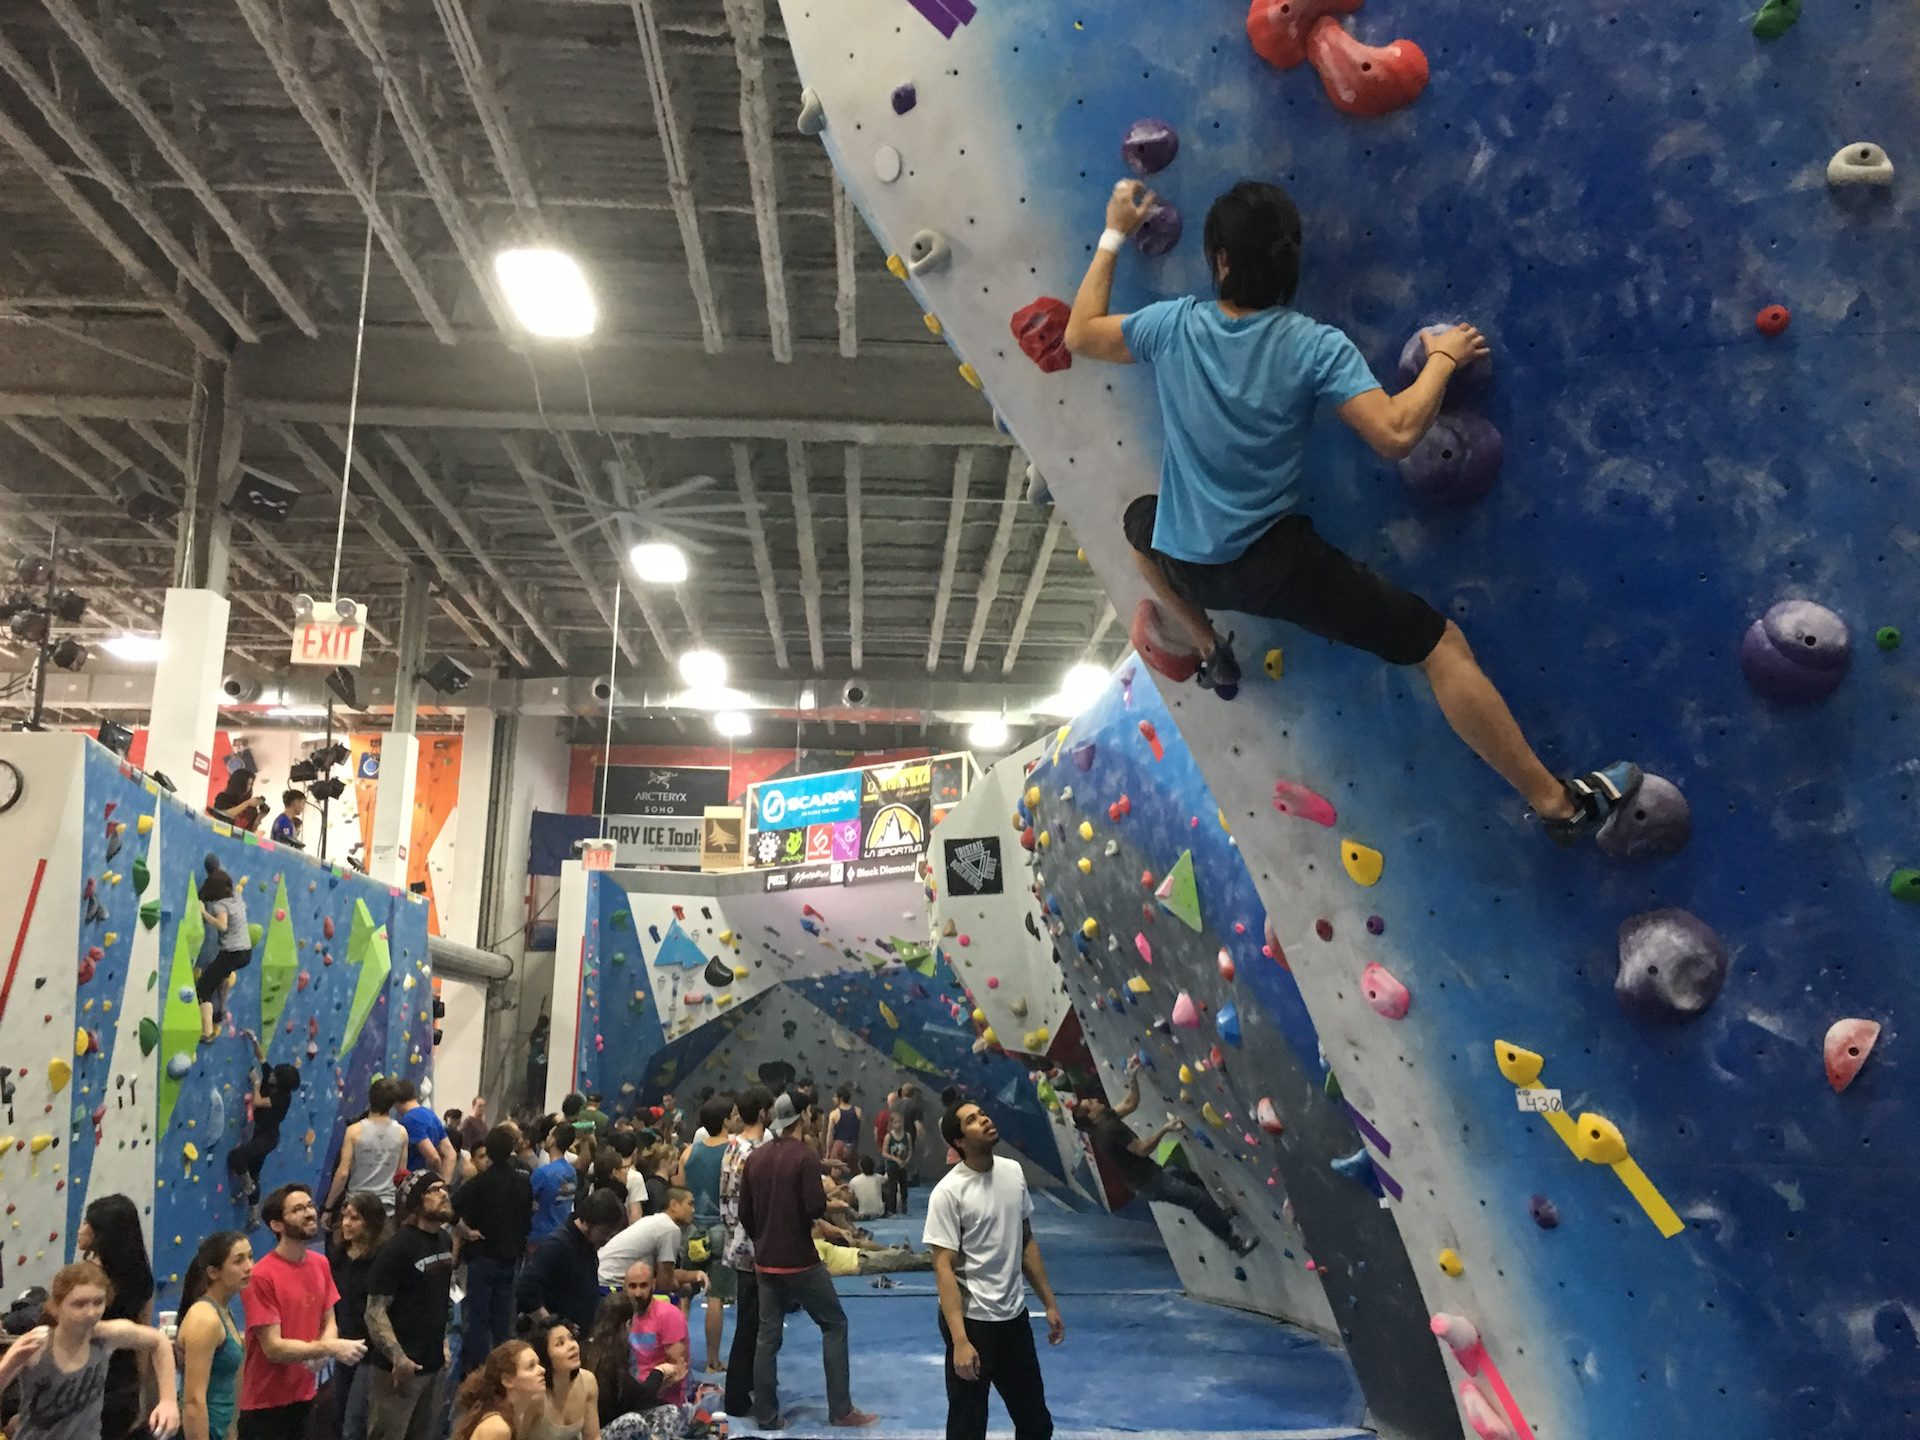 Cliffs Climbing Gym in Long Island City.